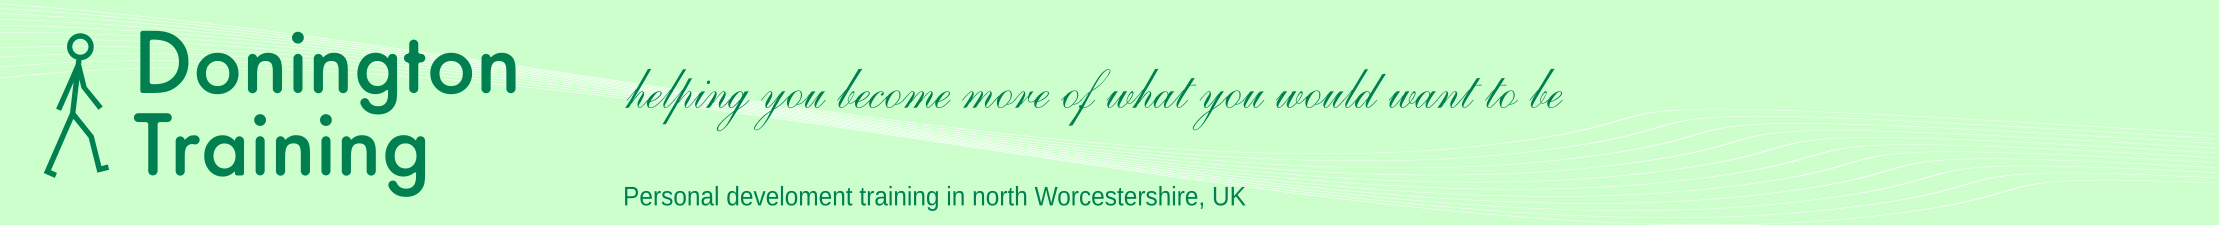 Donington Training, Helping you become more of what you would want to be, personal development training in North Worcestershire, UK